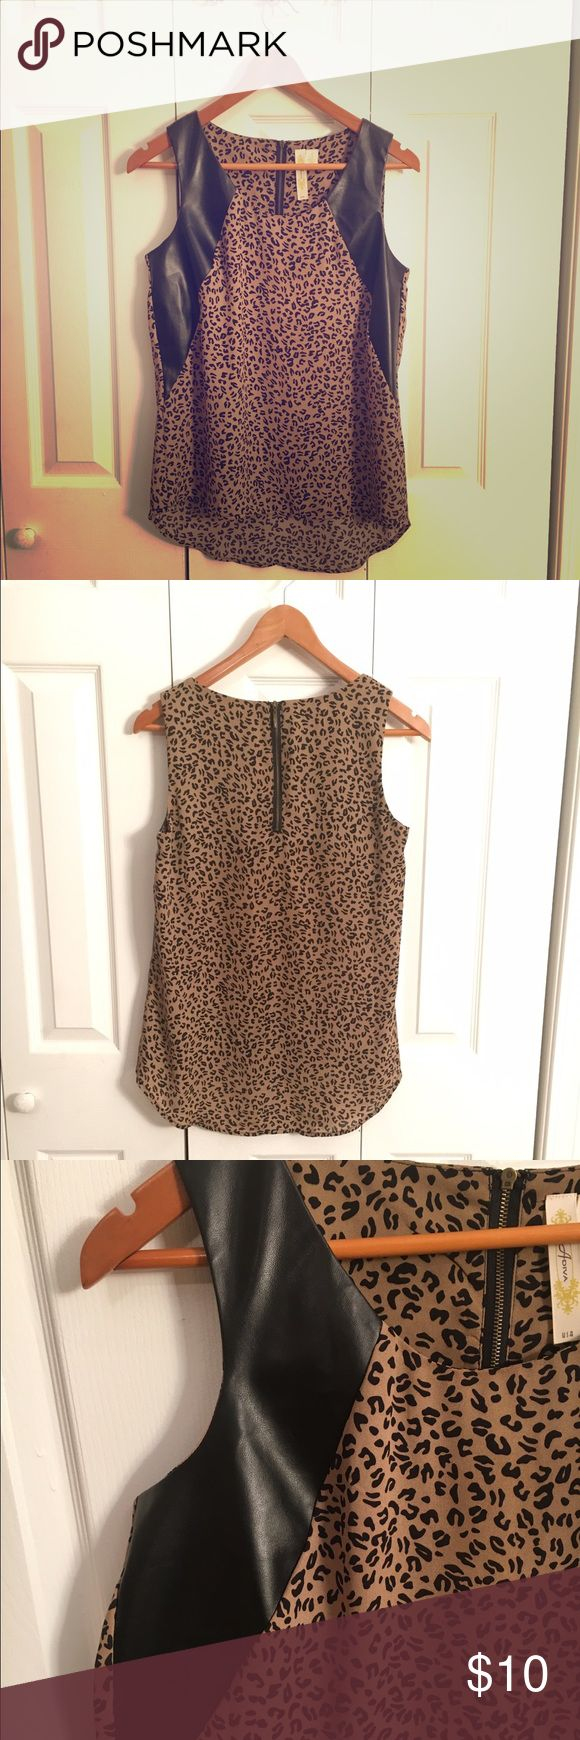 Cheetah Print Tank w/ Suede Detail &I Exposed Zip This cheetah print shirt is a nicely toned down color so that it can be dressed up or down. The dark brown suede details near the arms create a nice breakup of the pattern, and the exposed zipper in the back is a cute detail! Tops Tank Tops